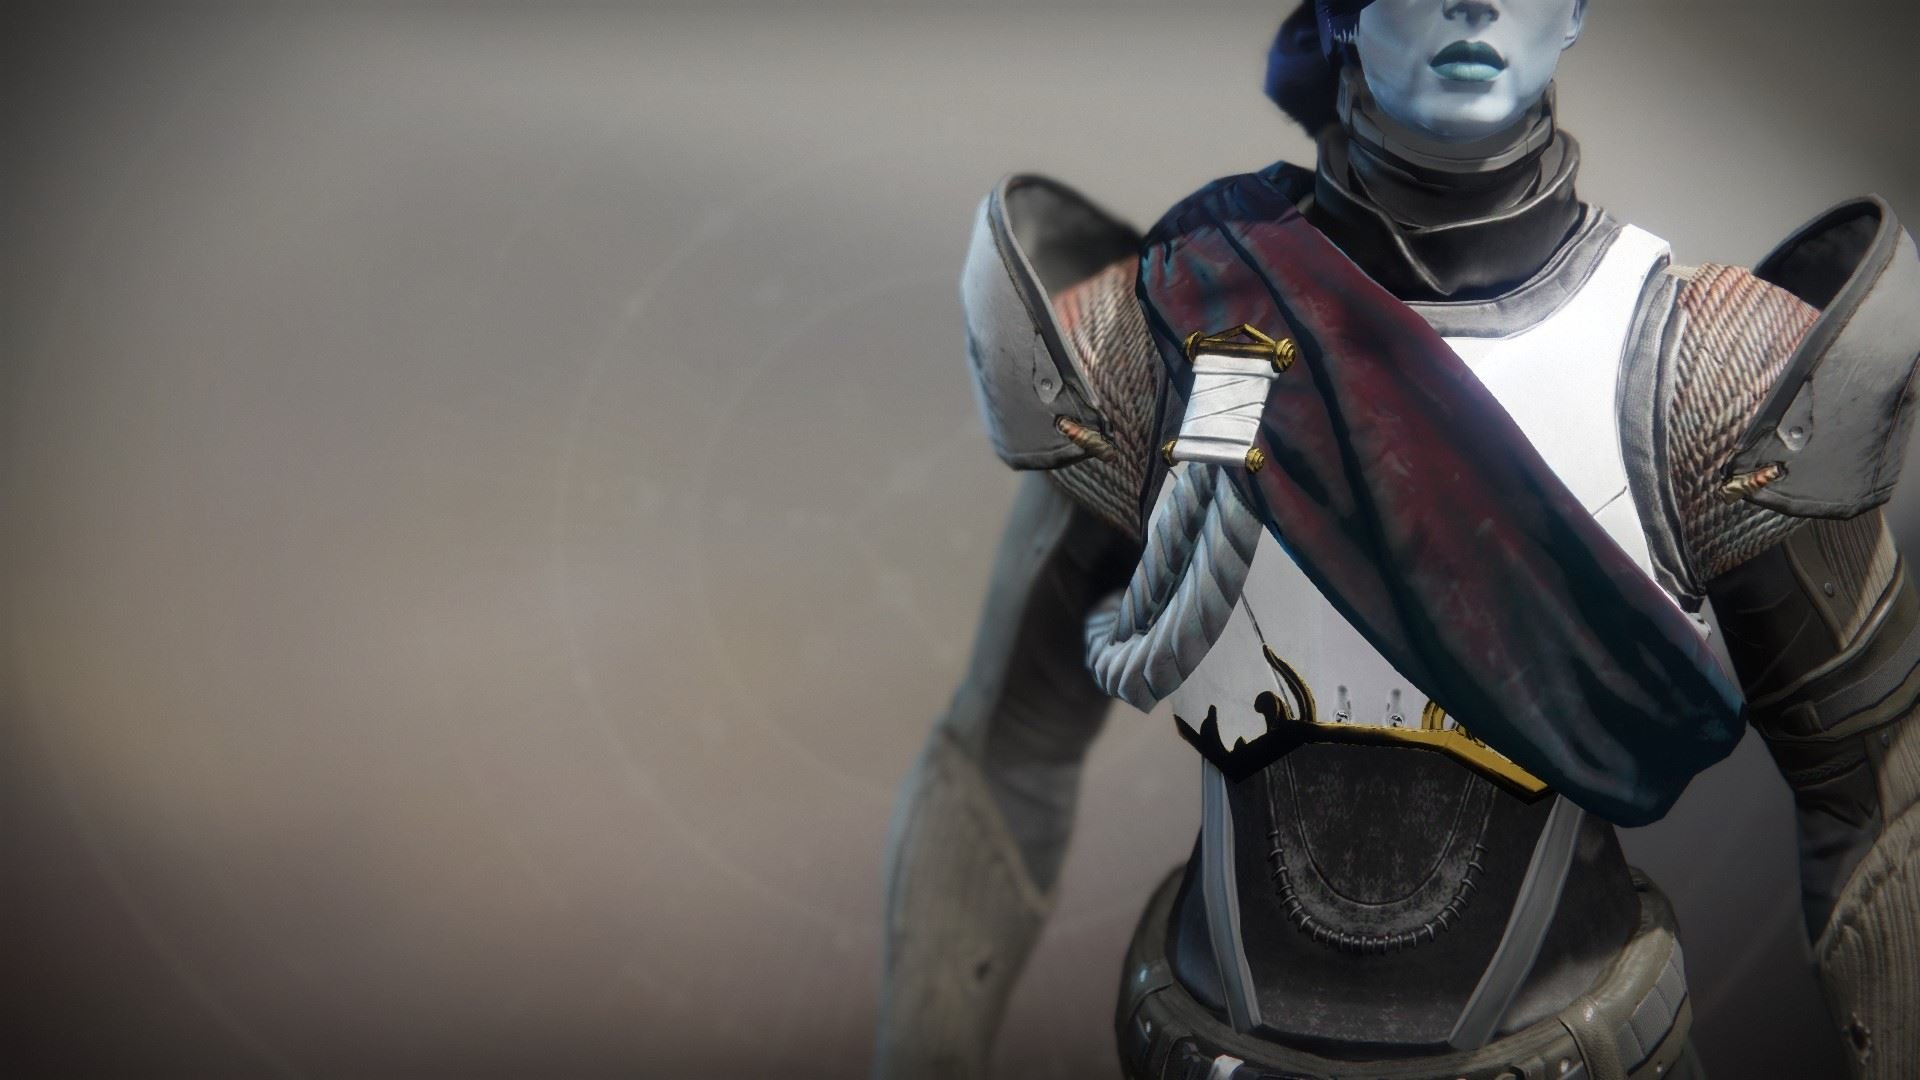 An in-game render of the Solstice Plate (Resplendent).